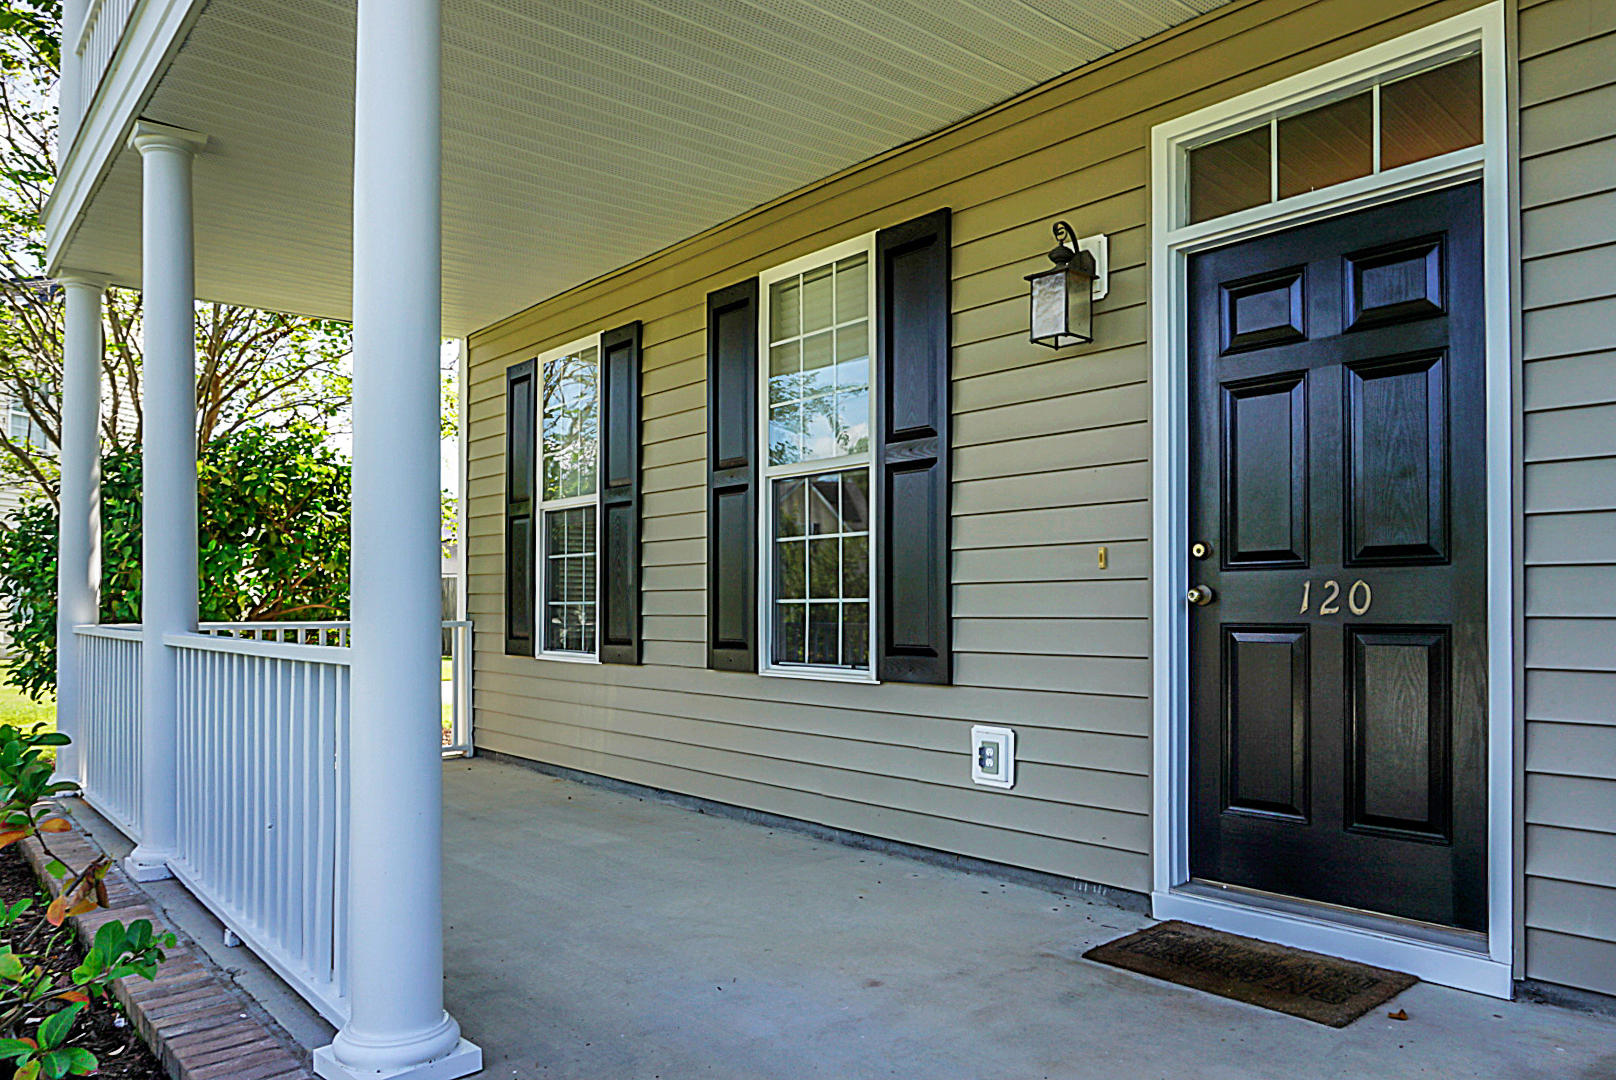 Heatherwoods Homes For Sale - 120 Full Moon, Ladson, SC - 37